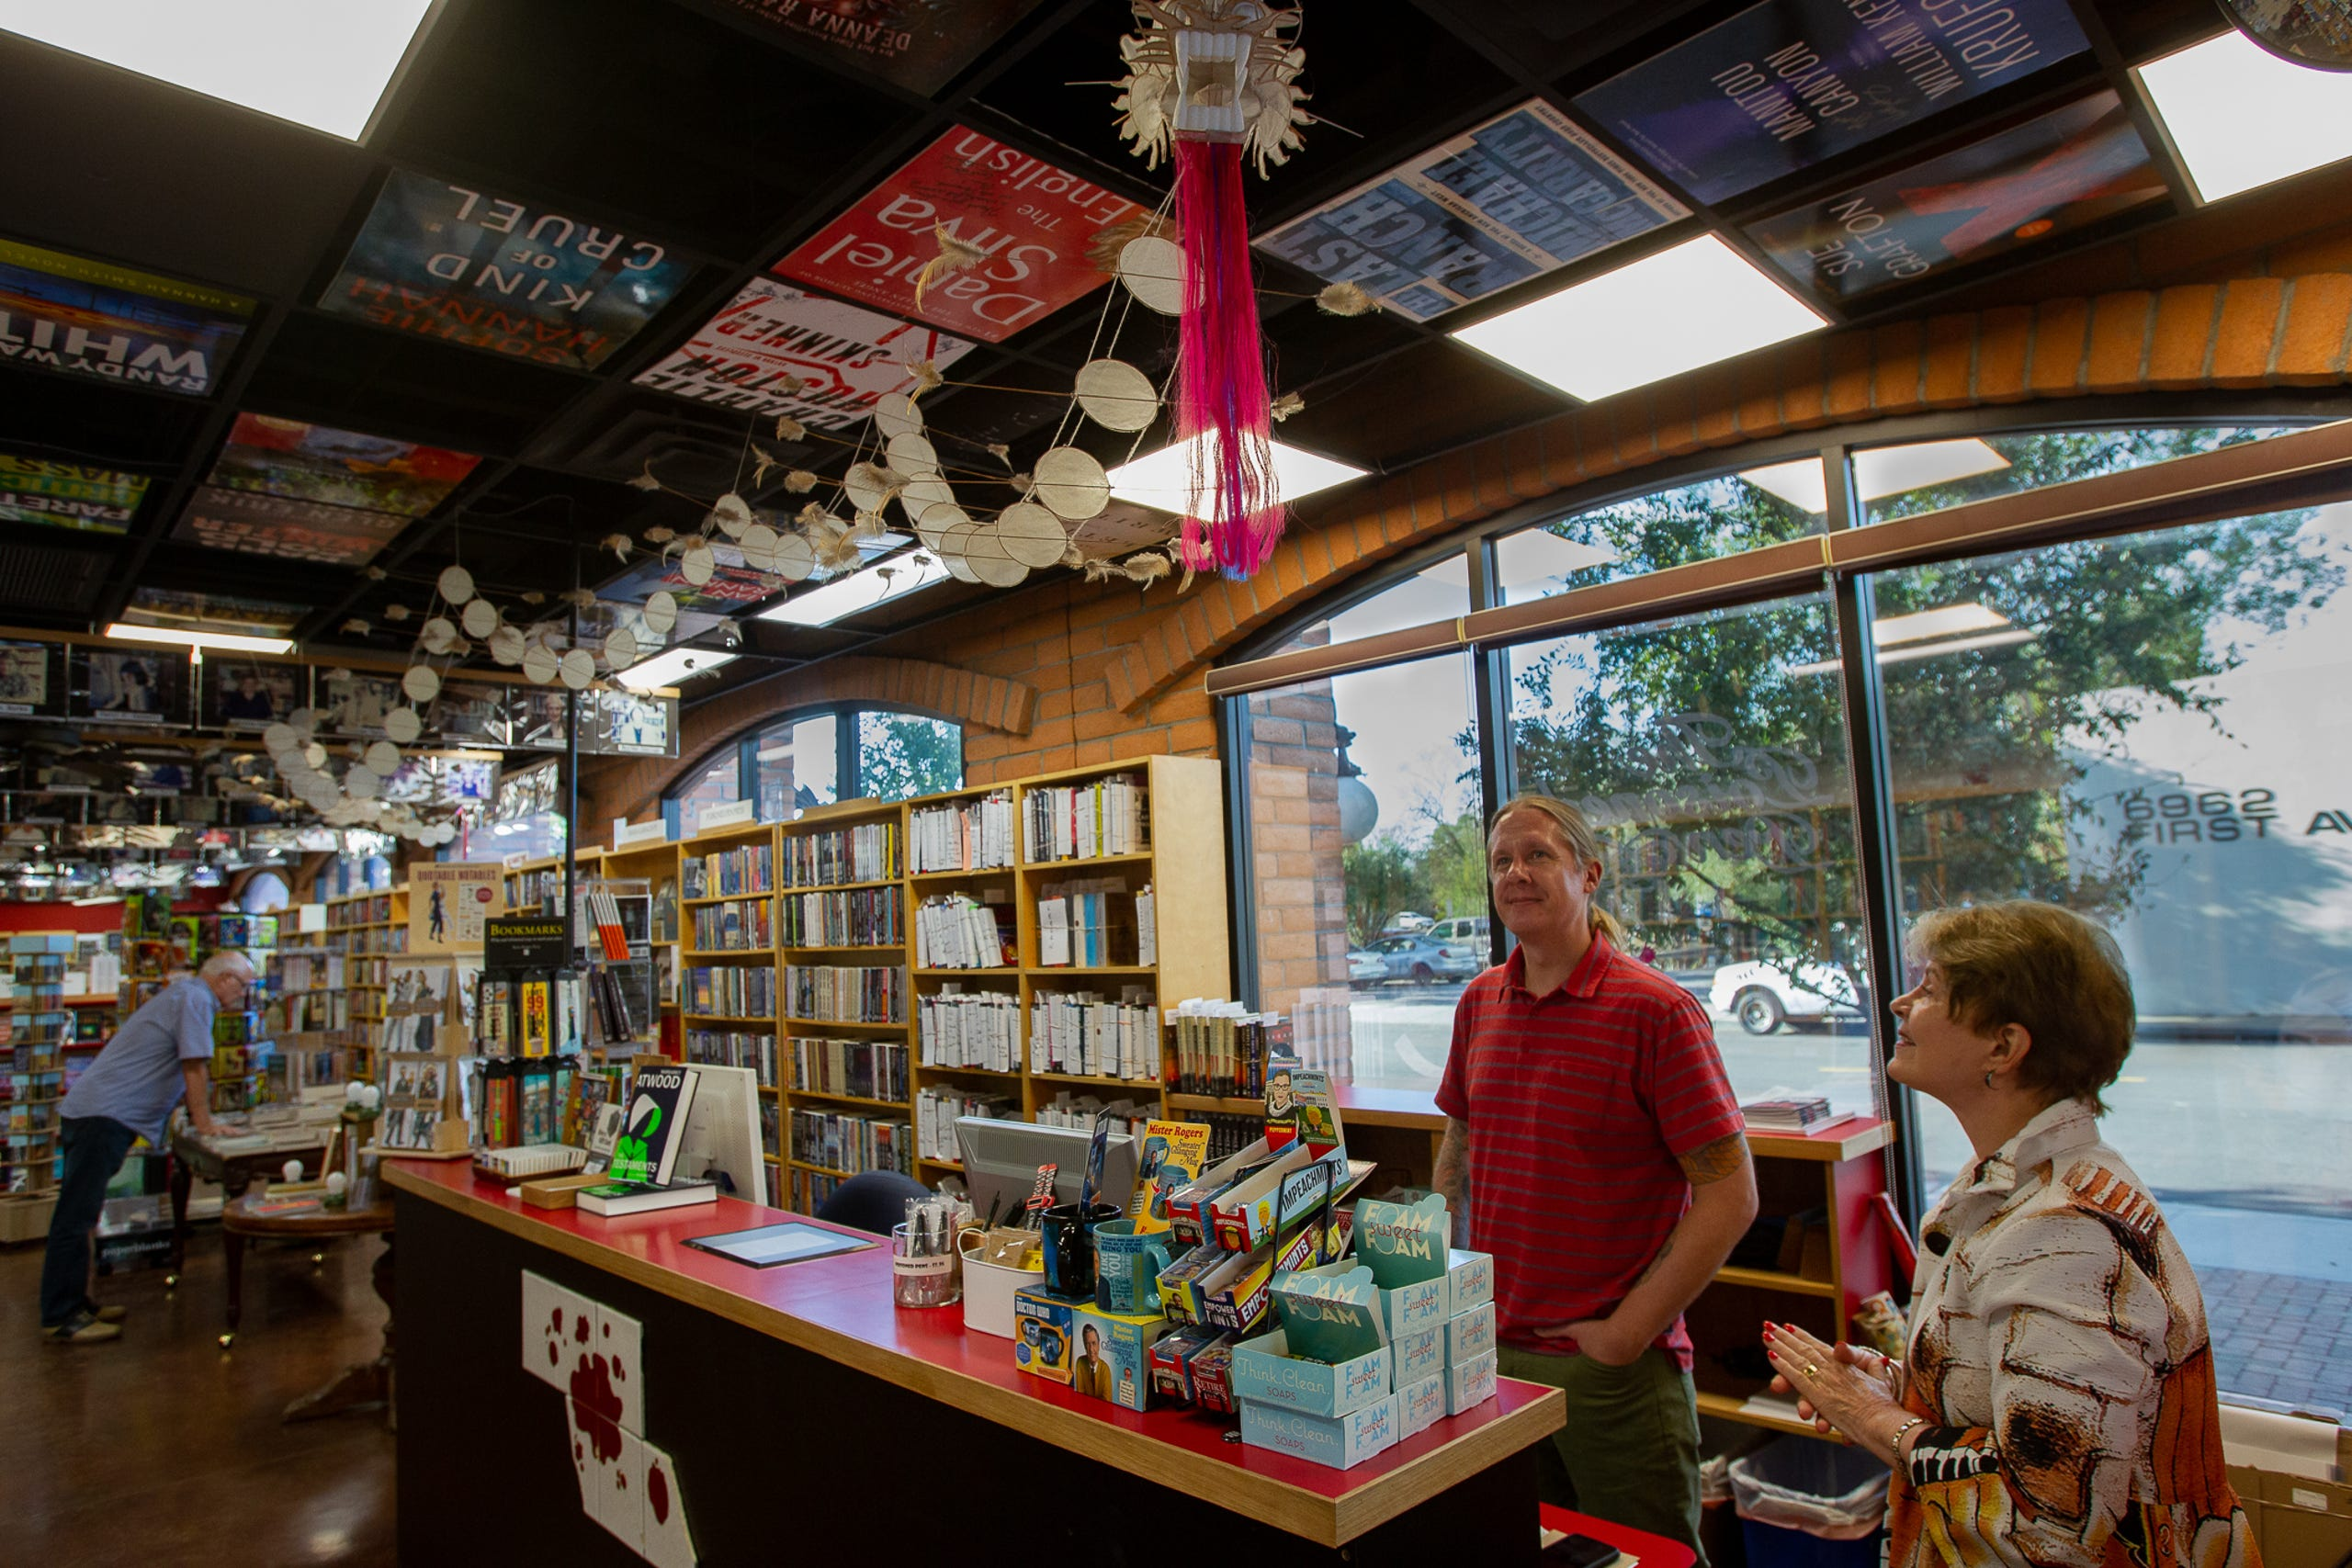 Posters of book covers, photos famous visitors and a large paper dragon are just some of the items decorating Poisoned Pen Bookstore, September 24, 2019.